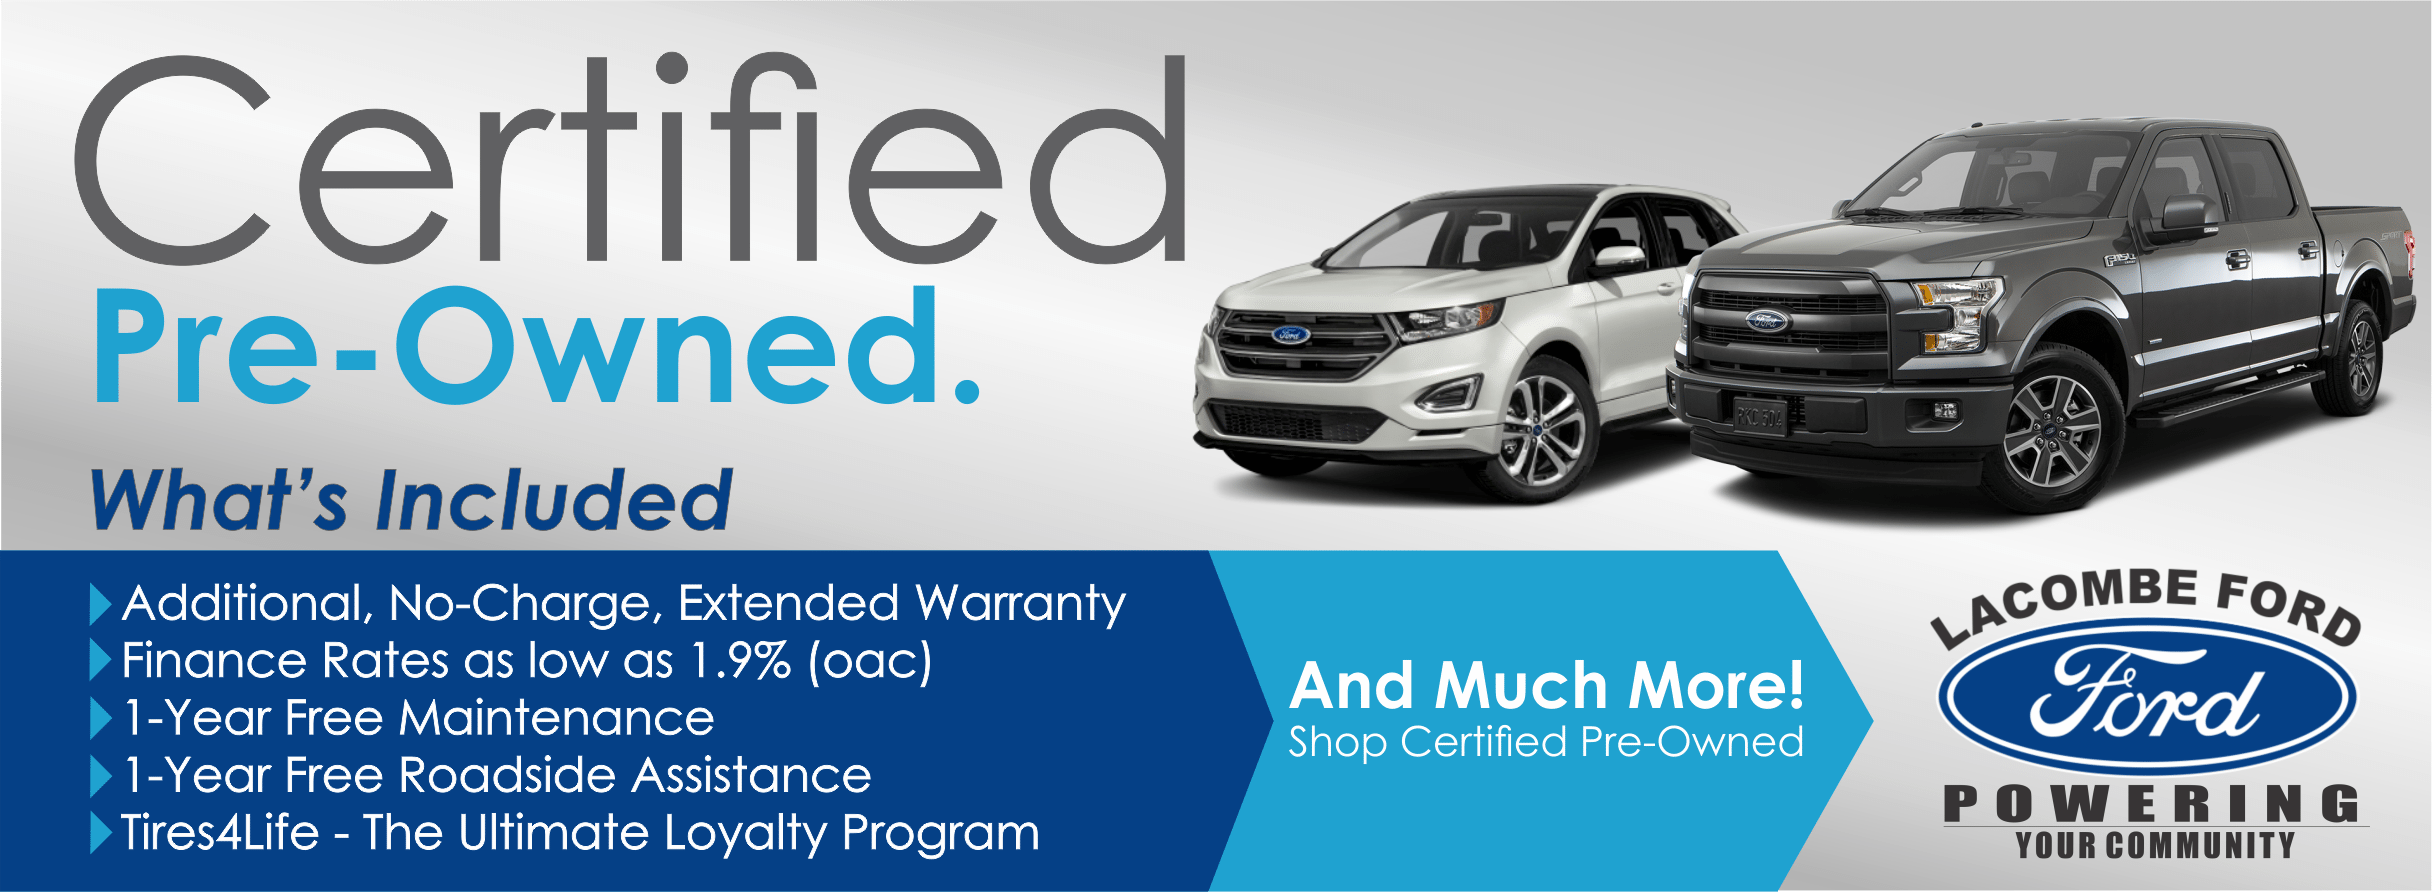 ford certified preowned vehicles for sale in lacombe alberta